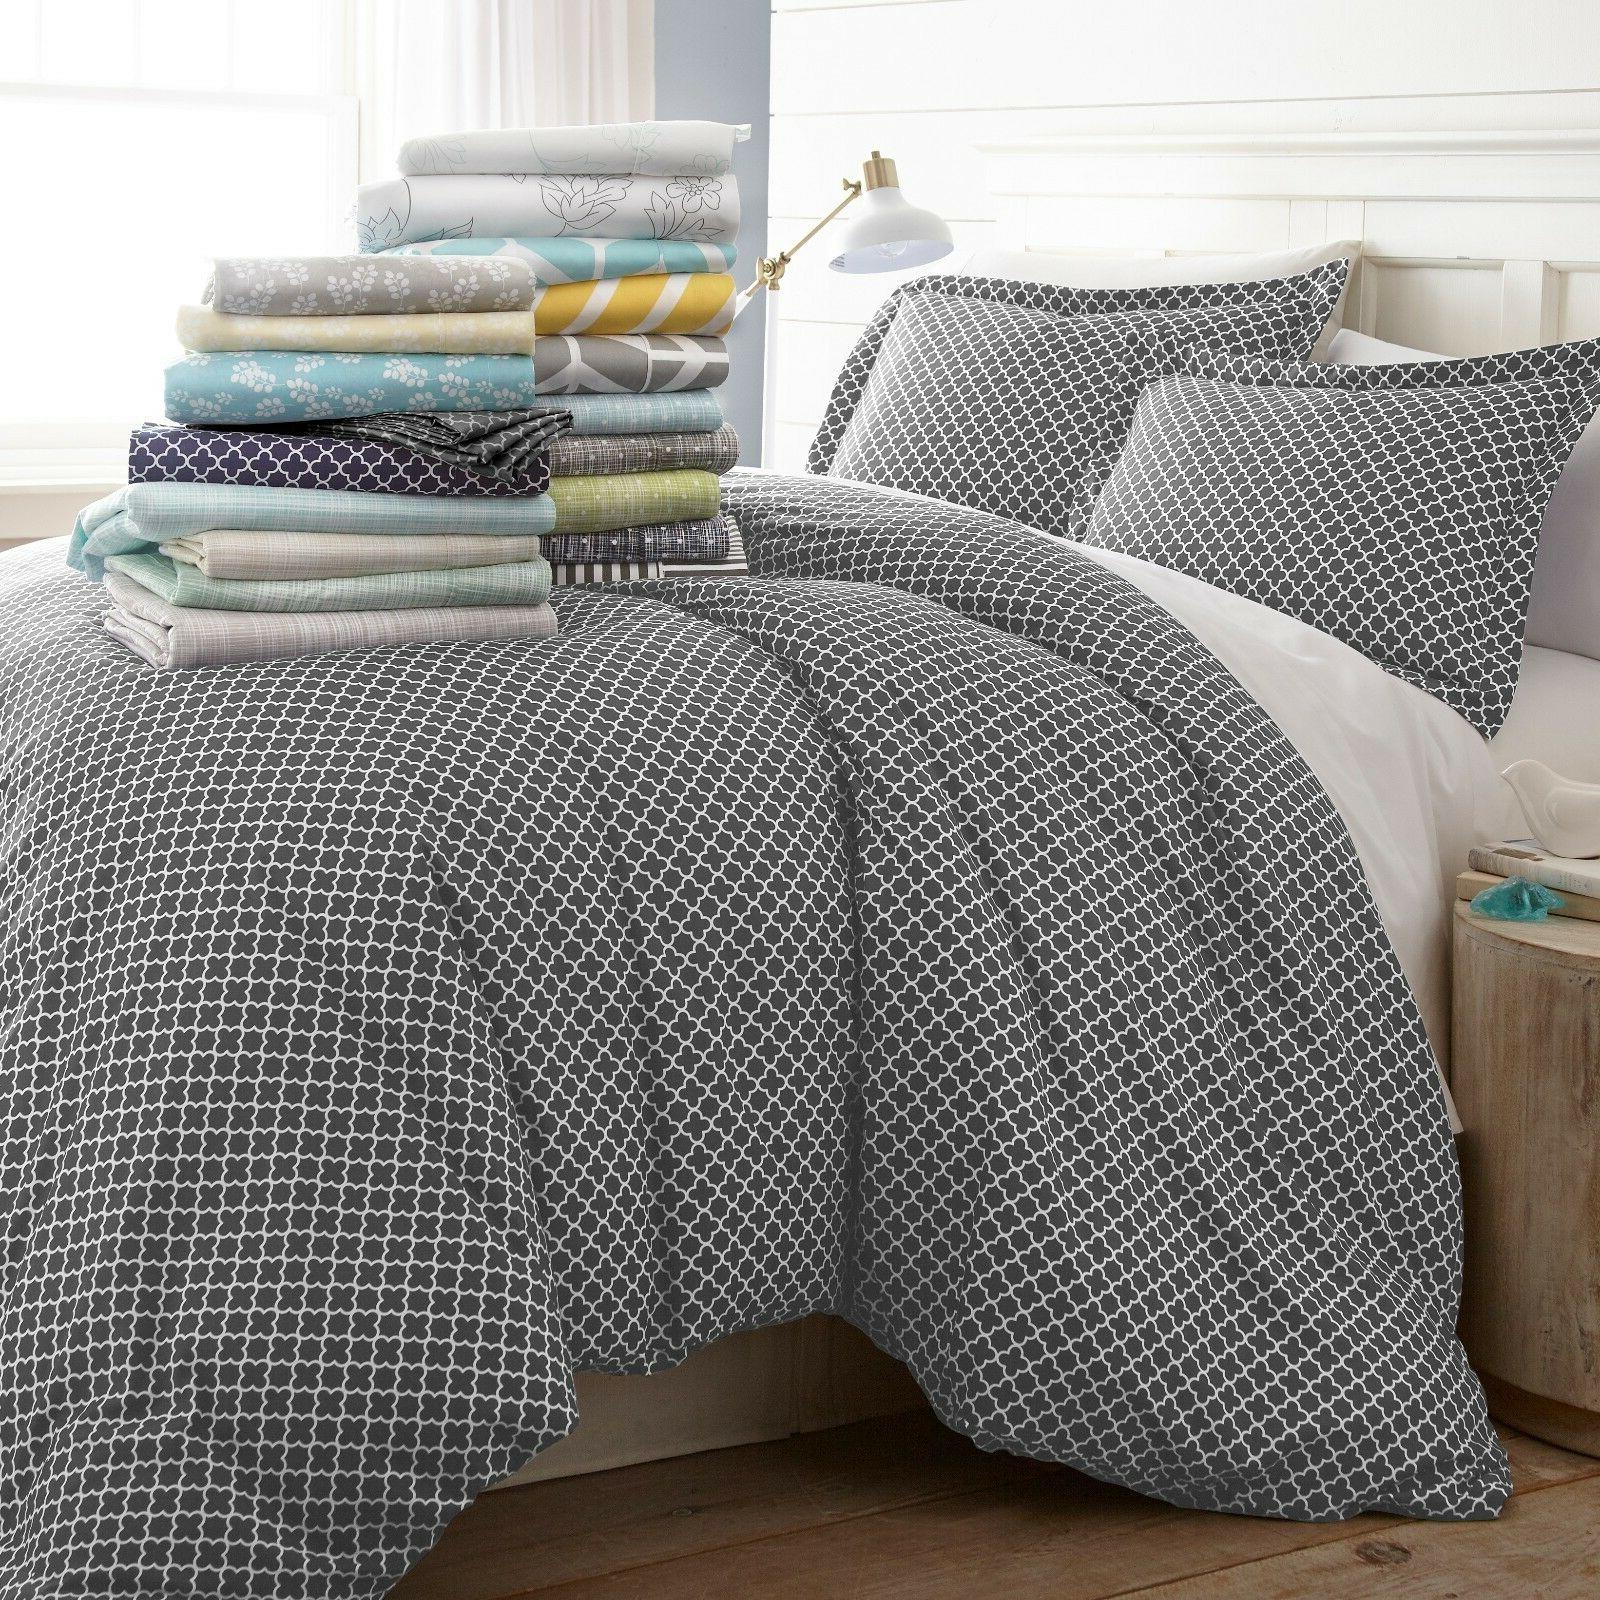 hotel luxury 3 piece patterned duvet cover